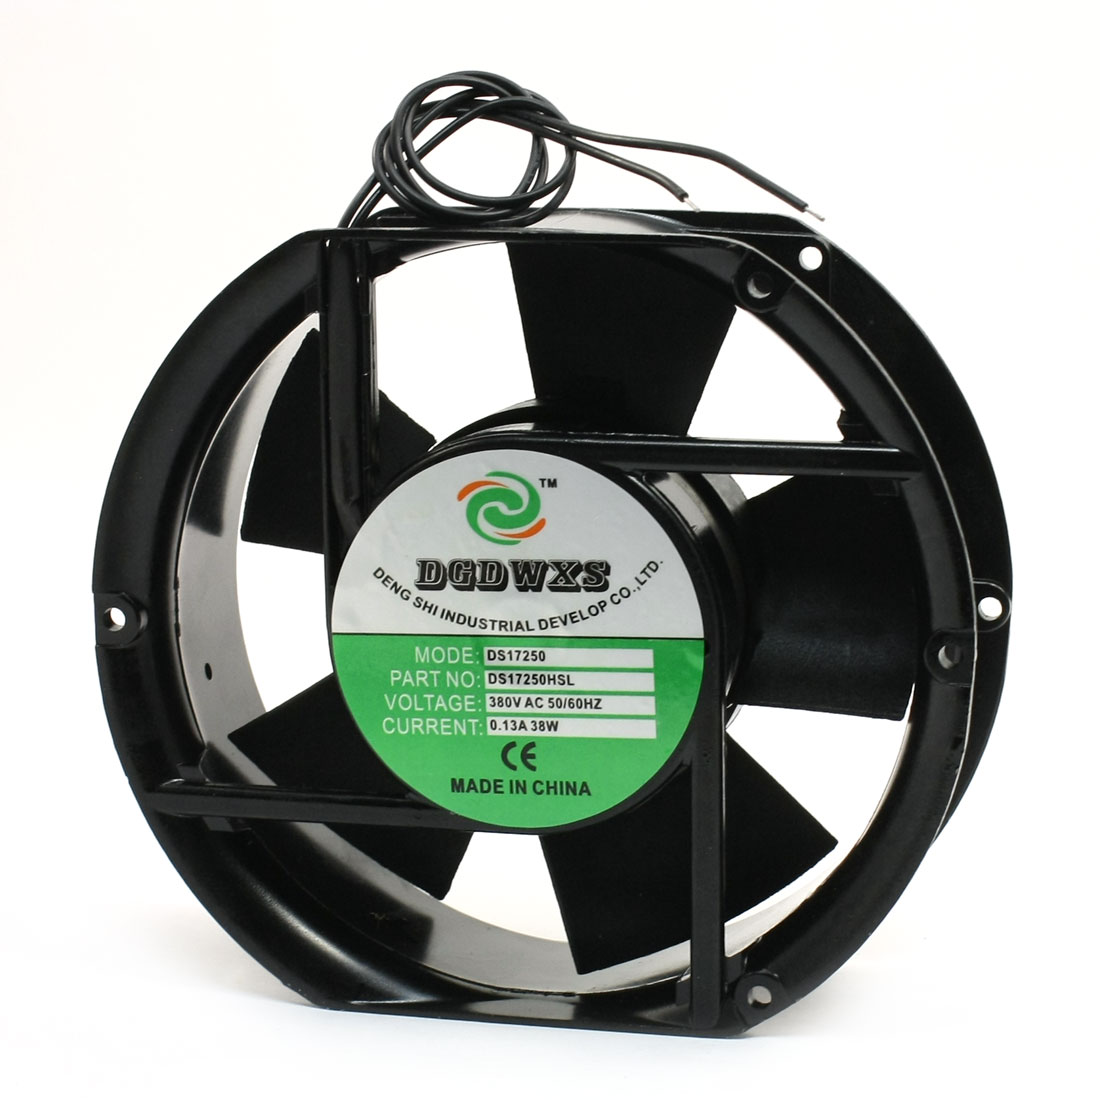 170mm x 150mm Wired Plastic Vane Metal Shell AC Axial Fan 380V 0.13A 38W